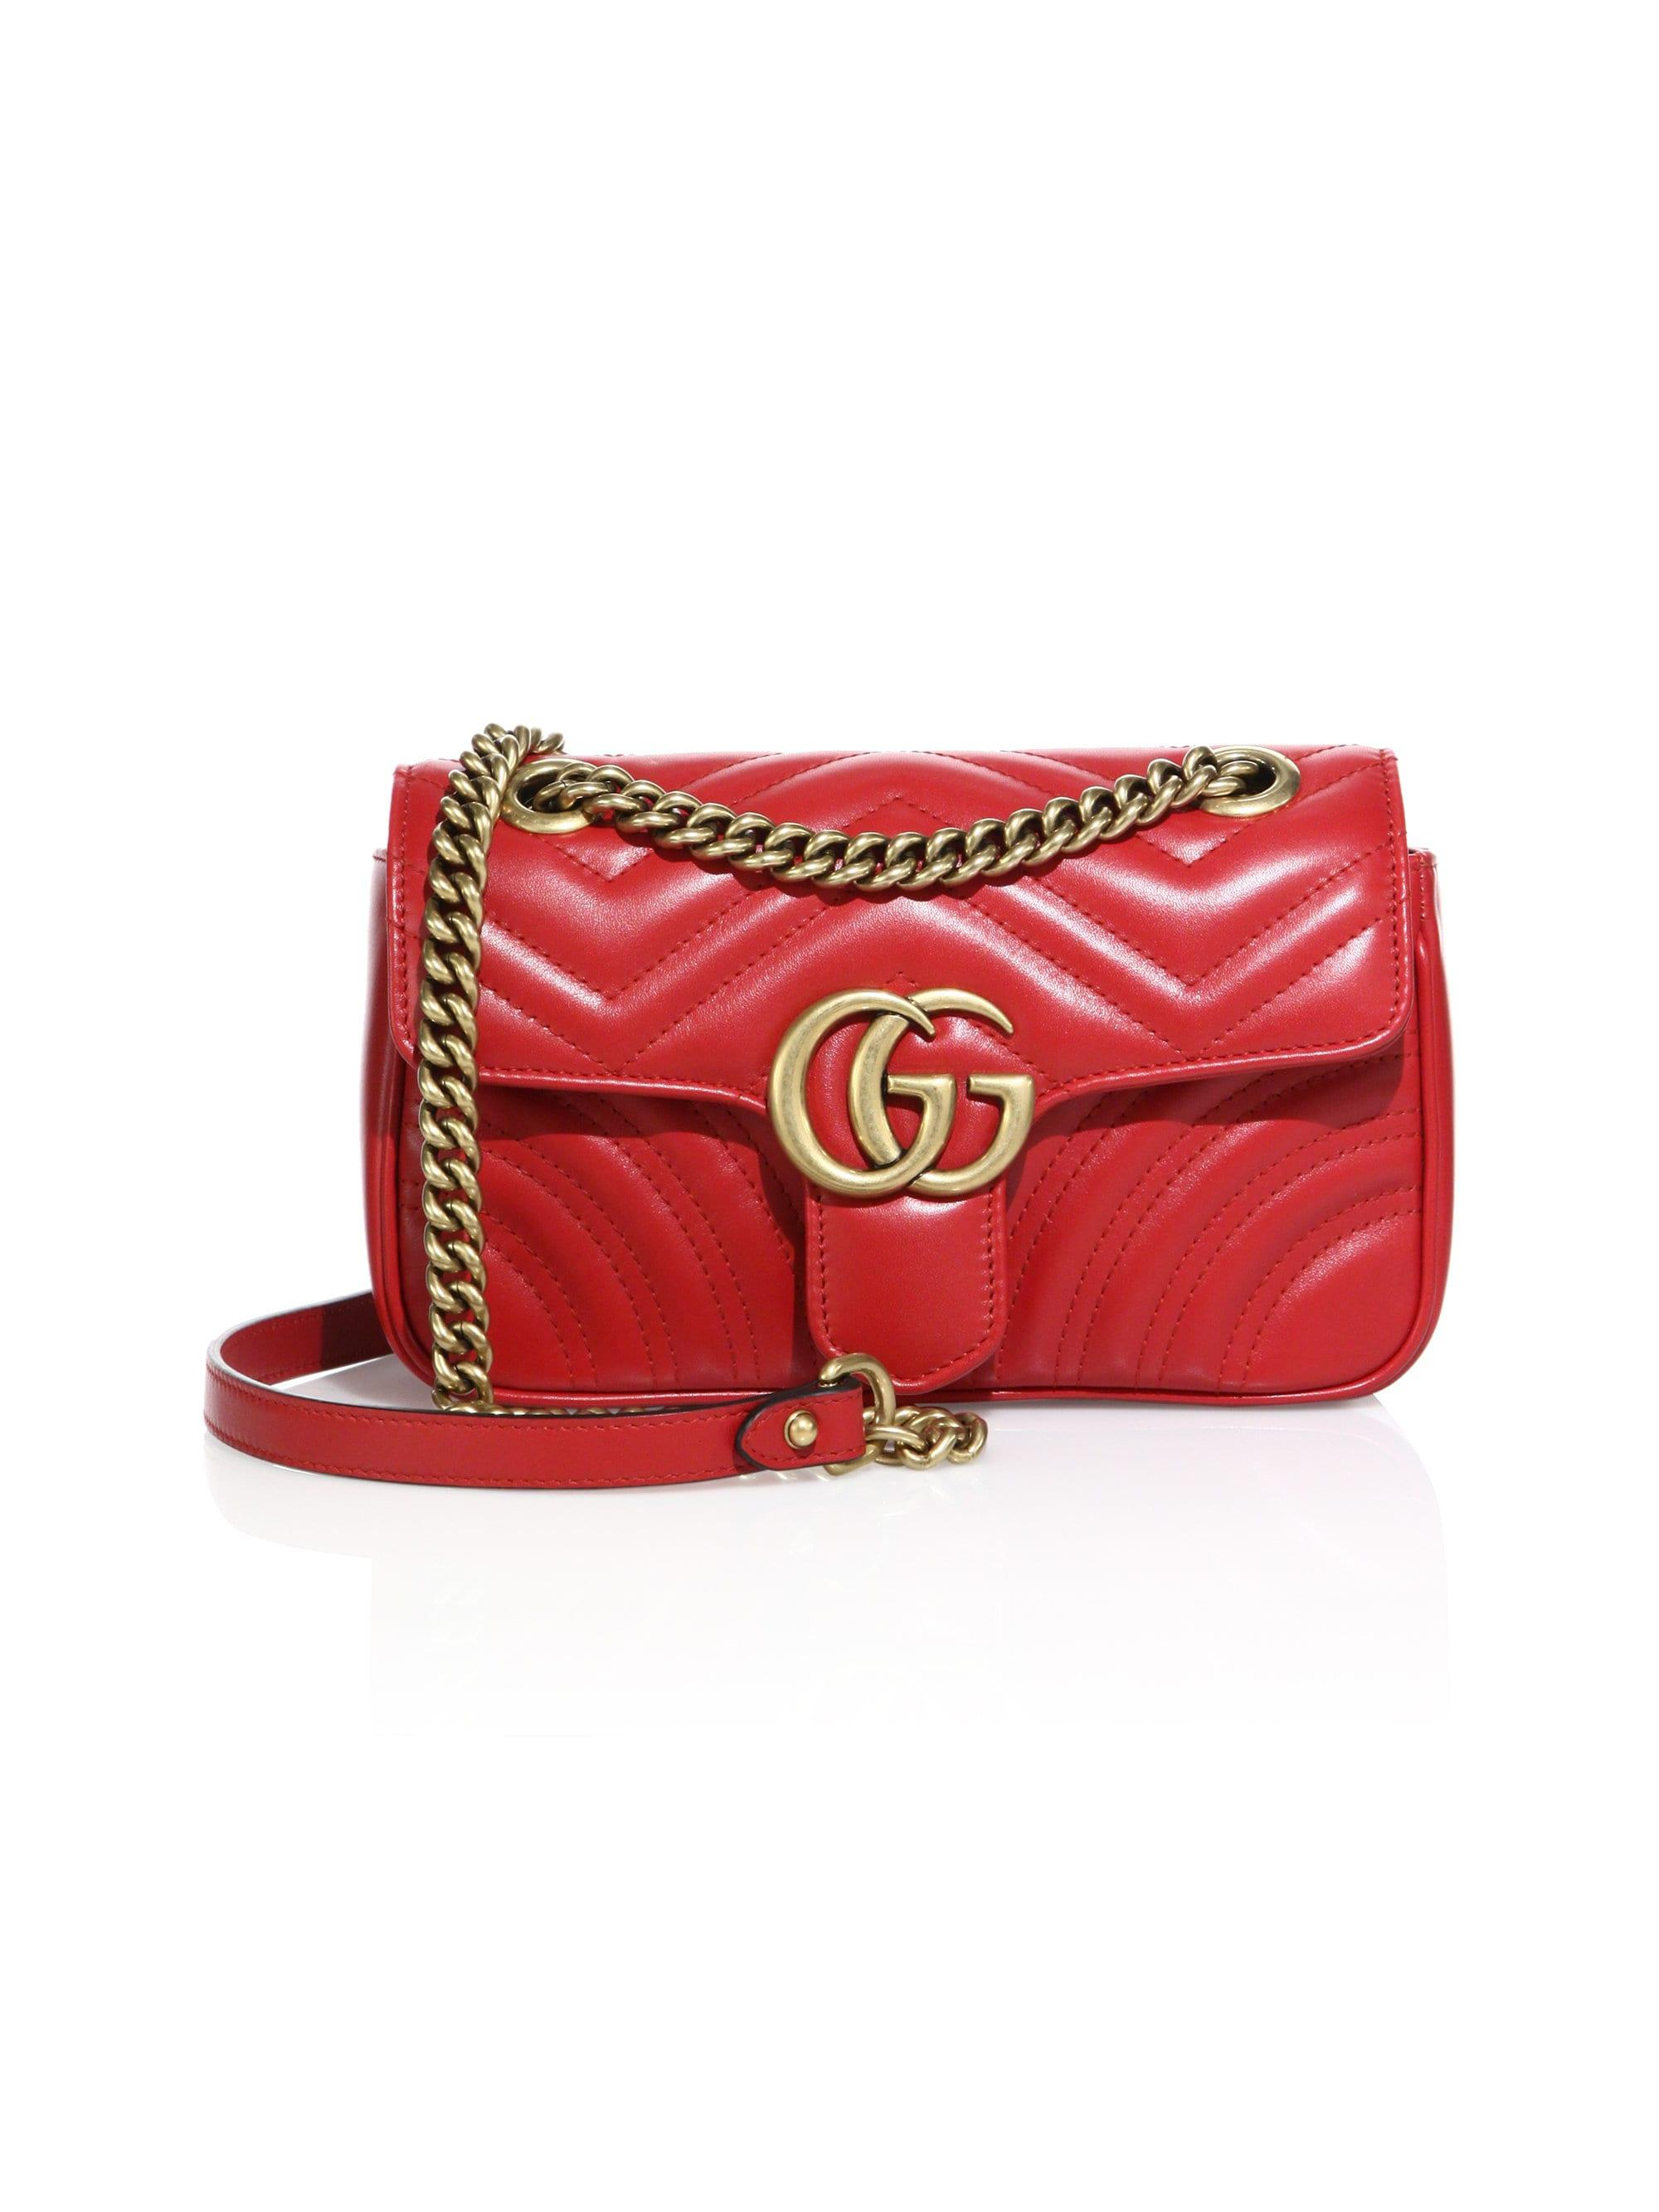 be192a8b843c Gucci Red Small GG Marmont 20 Bag Chanelhandbags Chanel